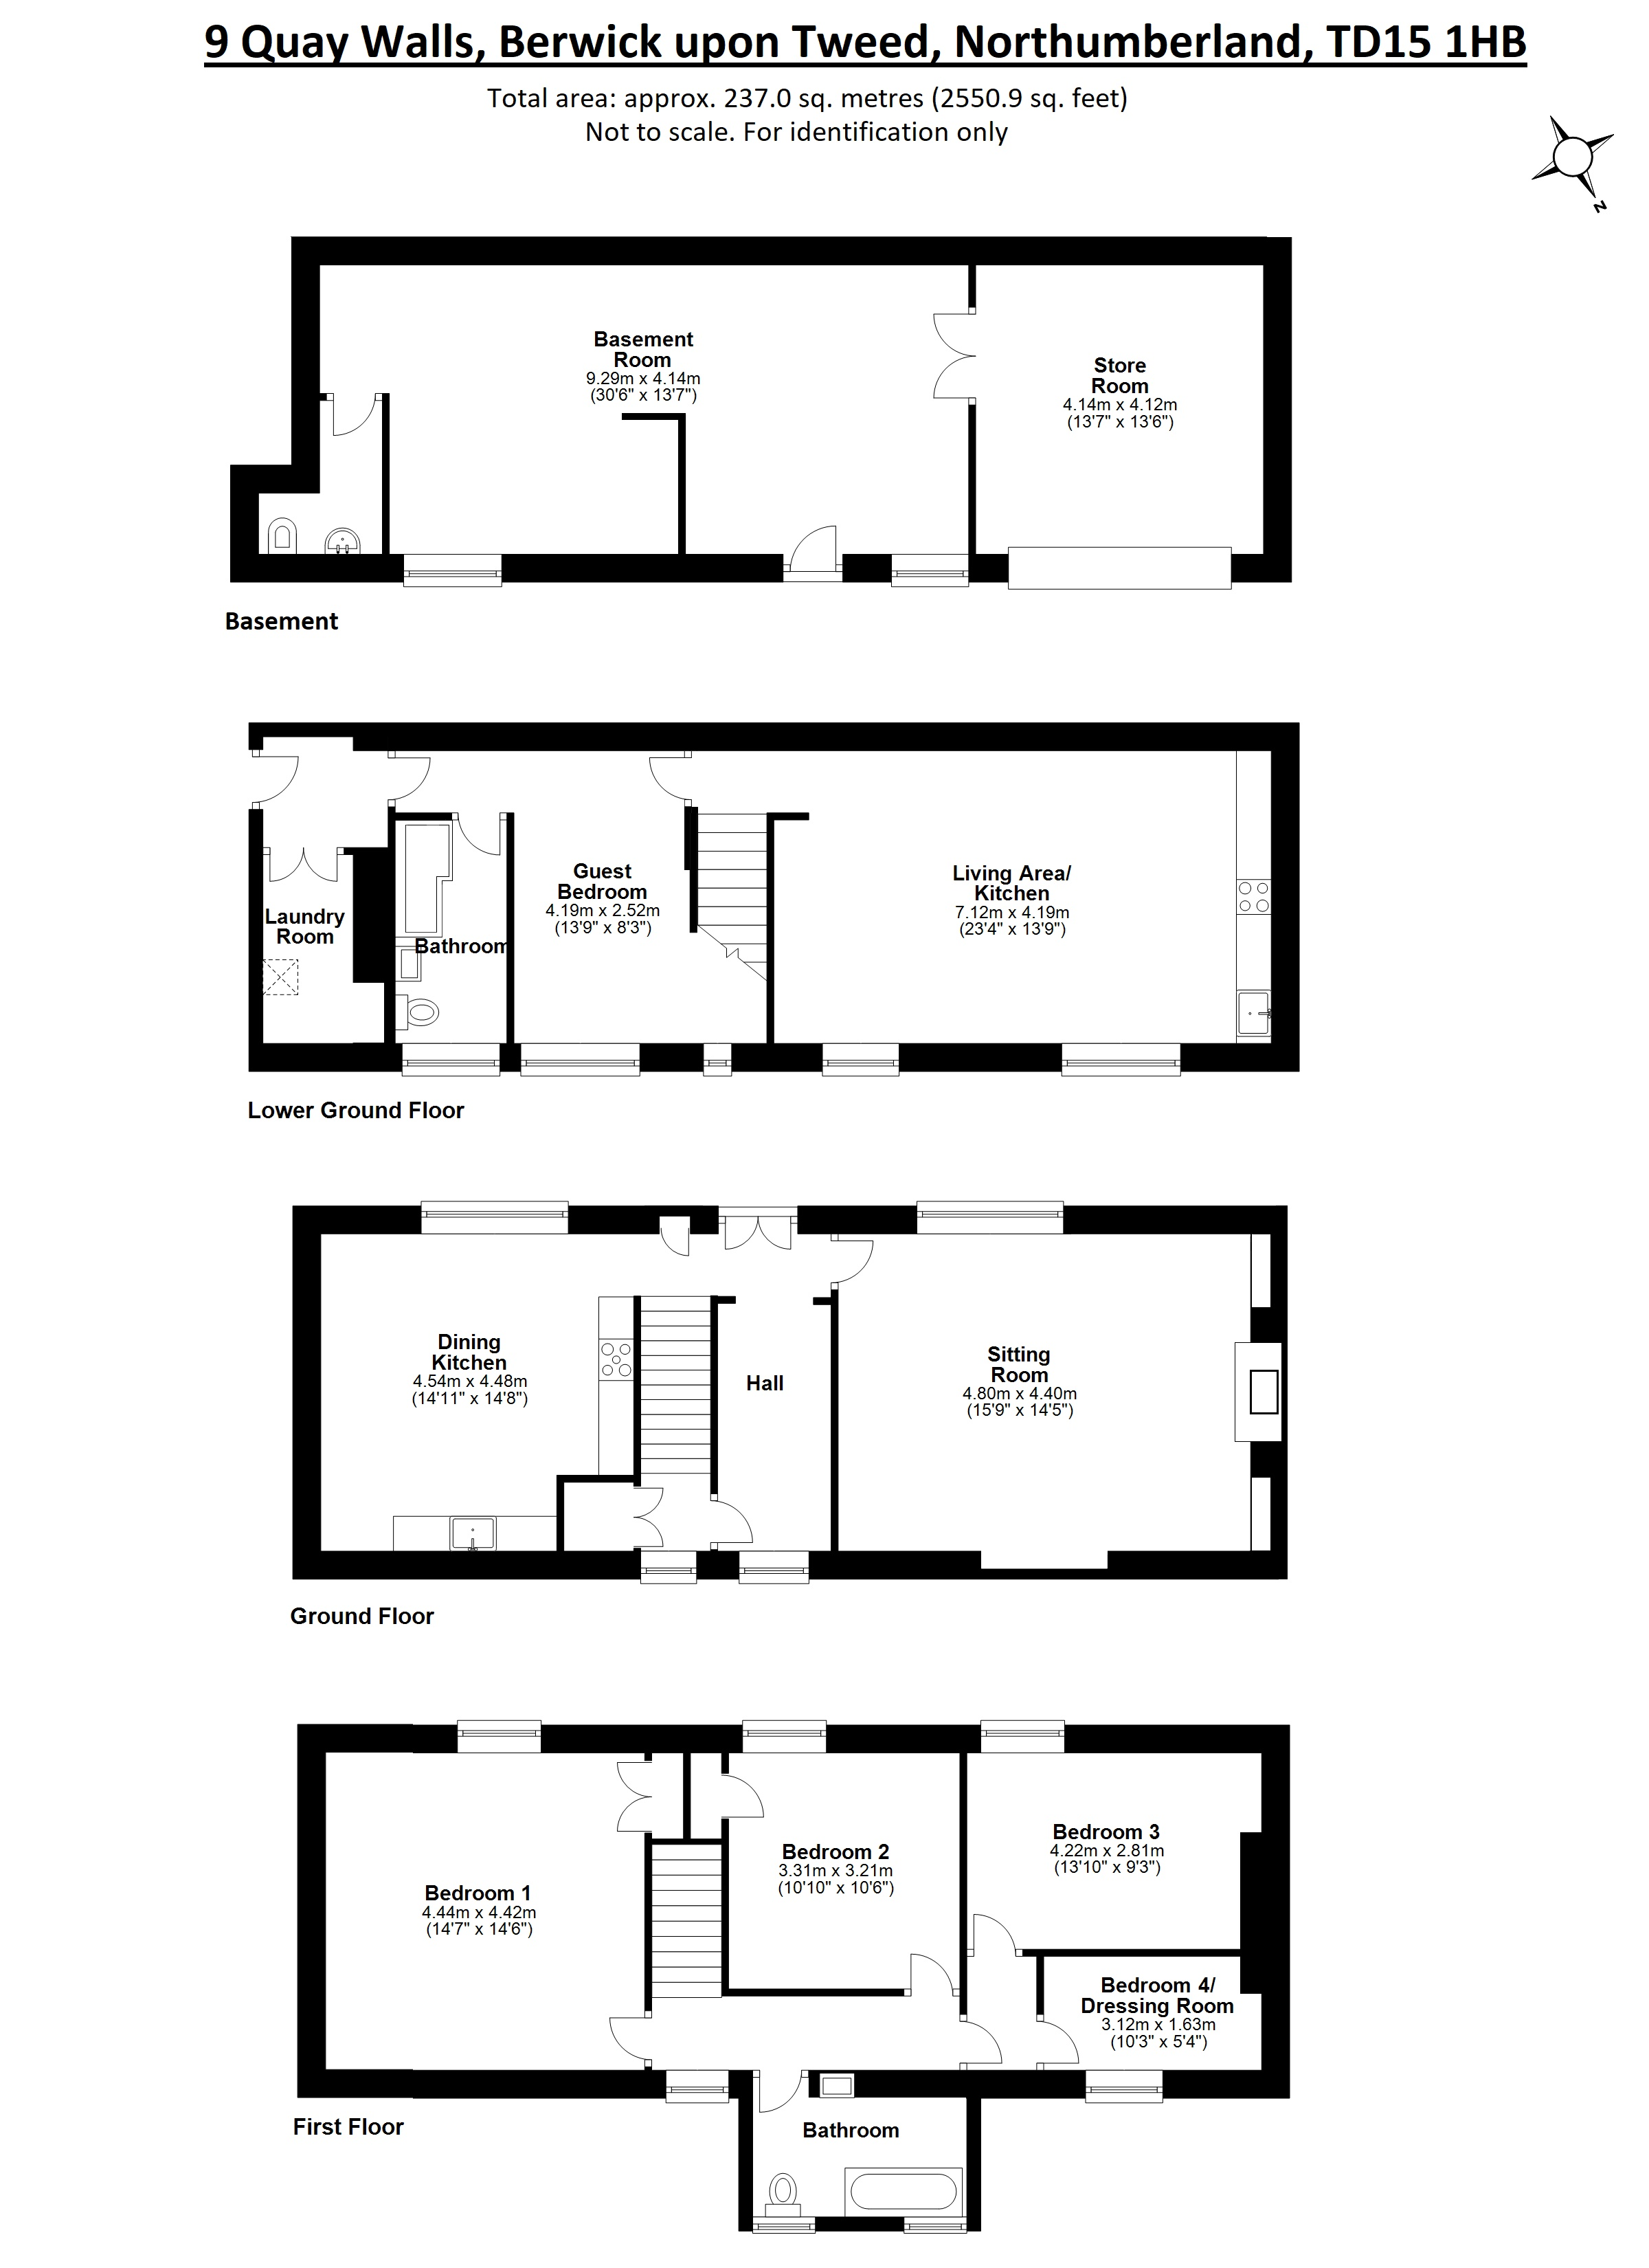 Floorplans for Quay Walls, Berwick-upon-Tweed, Northumberland, TD15